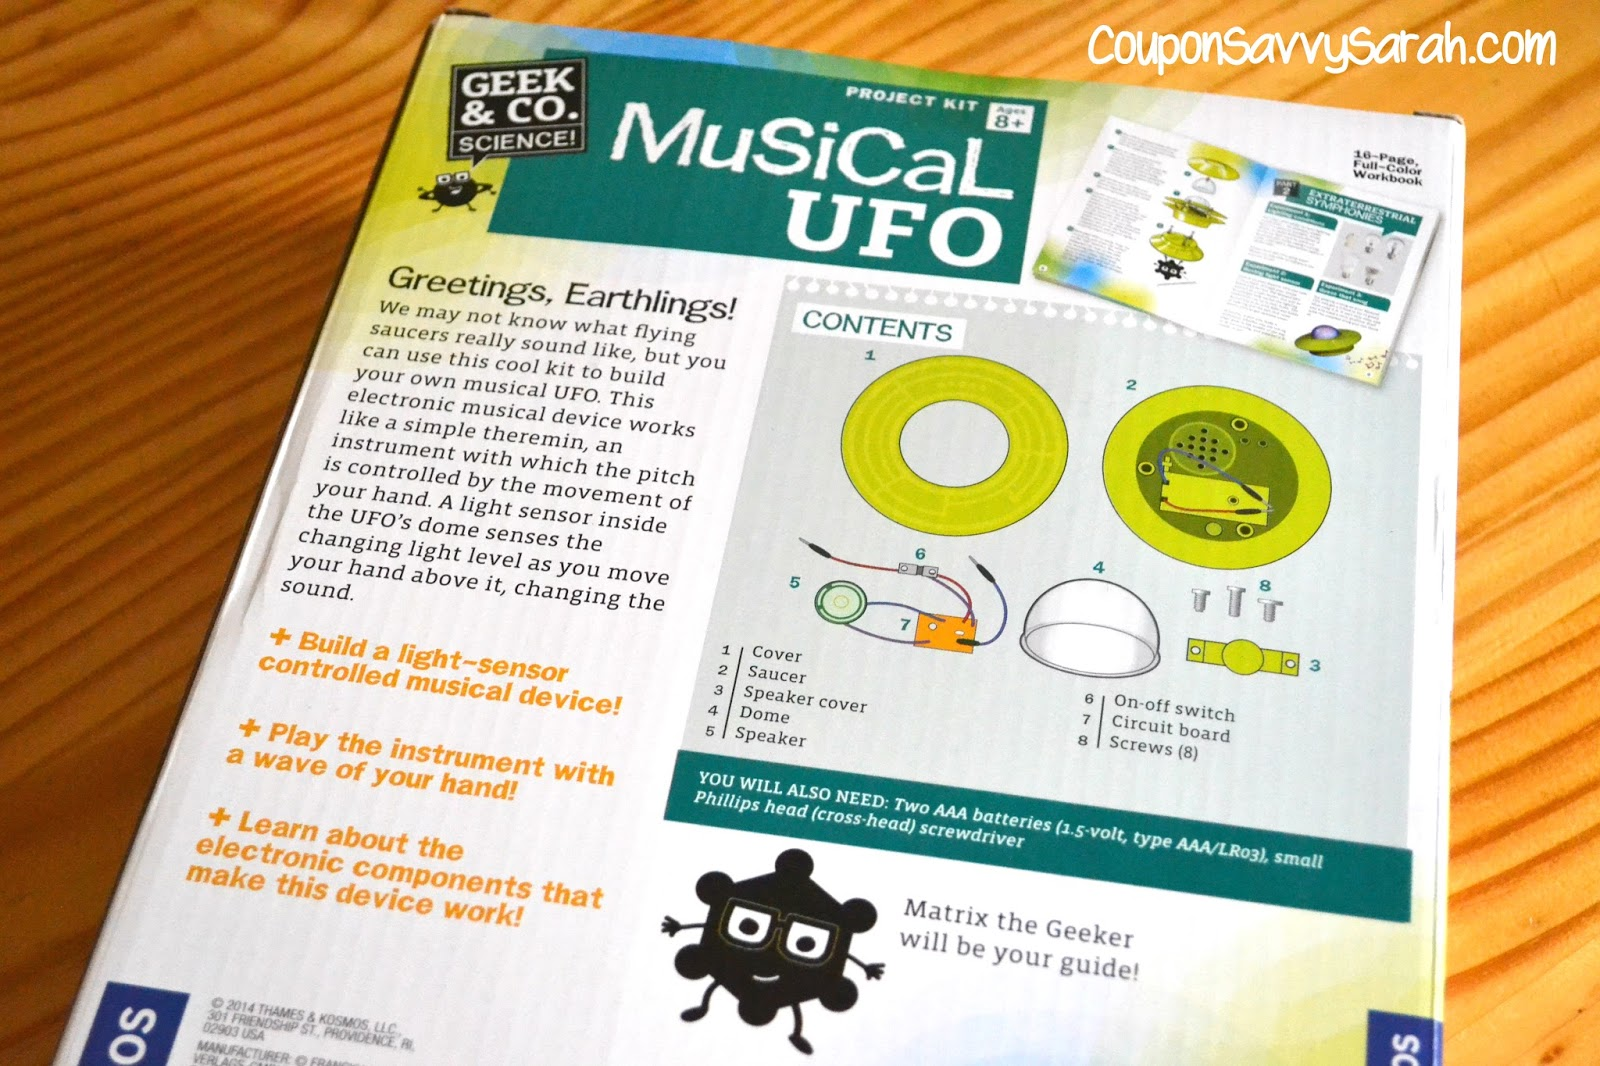 Coupon Savvy Sarah Thames And Kosmos Musical Ufo Build Your Own Simple Theremin Disclosure Receives Products In Order To Conduct Reviews No Monetary Compensation Was Provided Unless Noted Otherwise